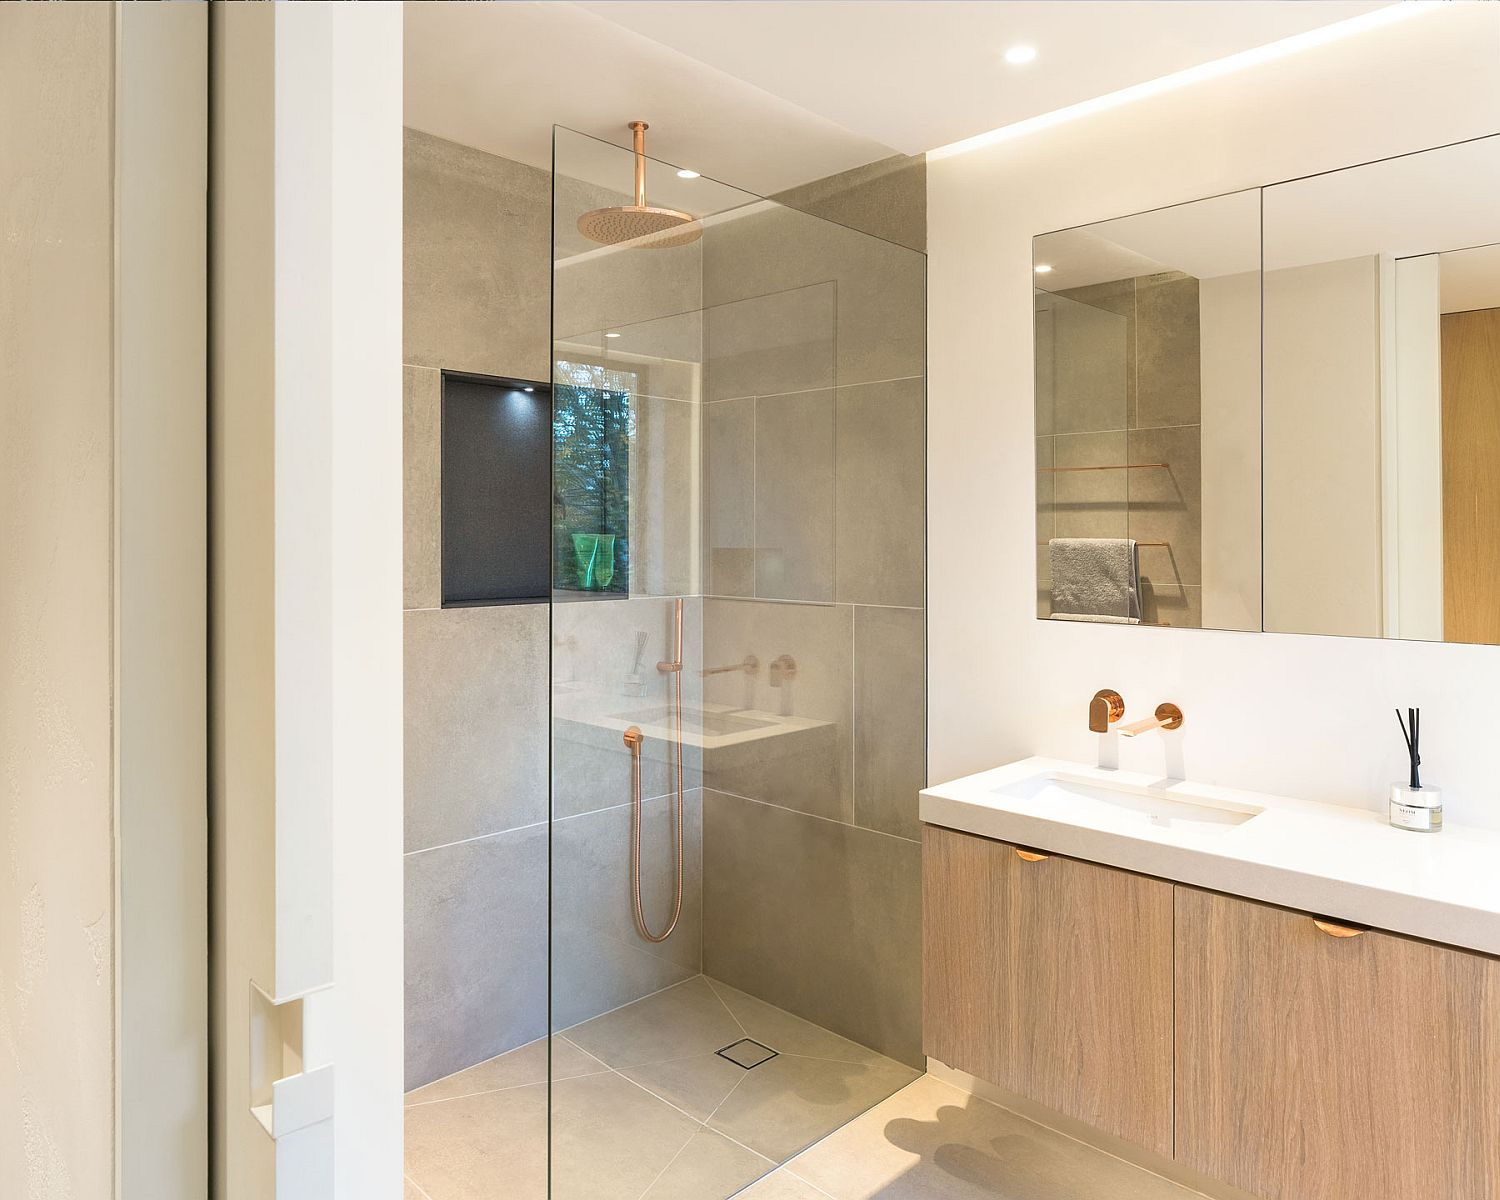 Modern bathroom of the home with neurral color palette